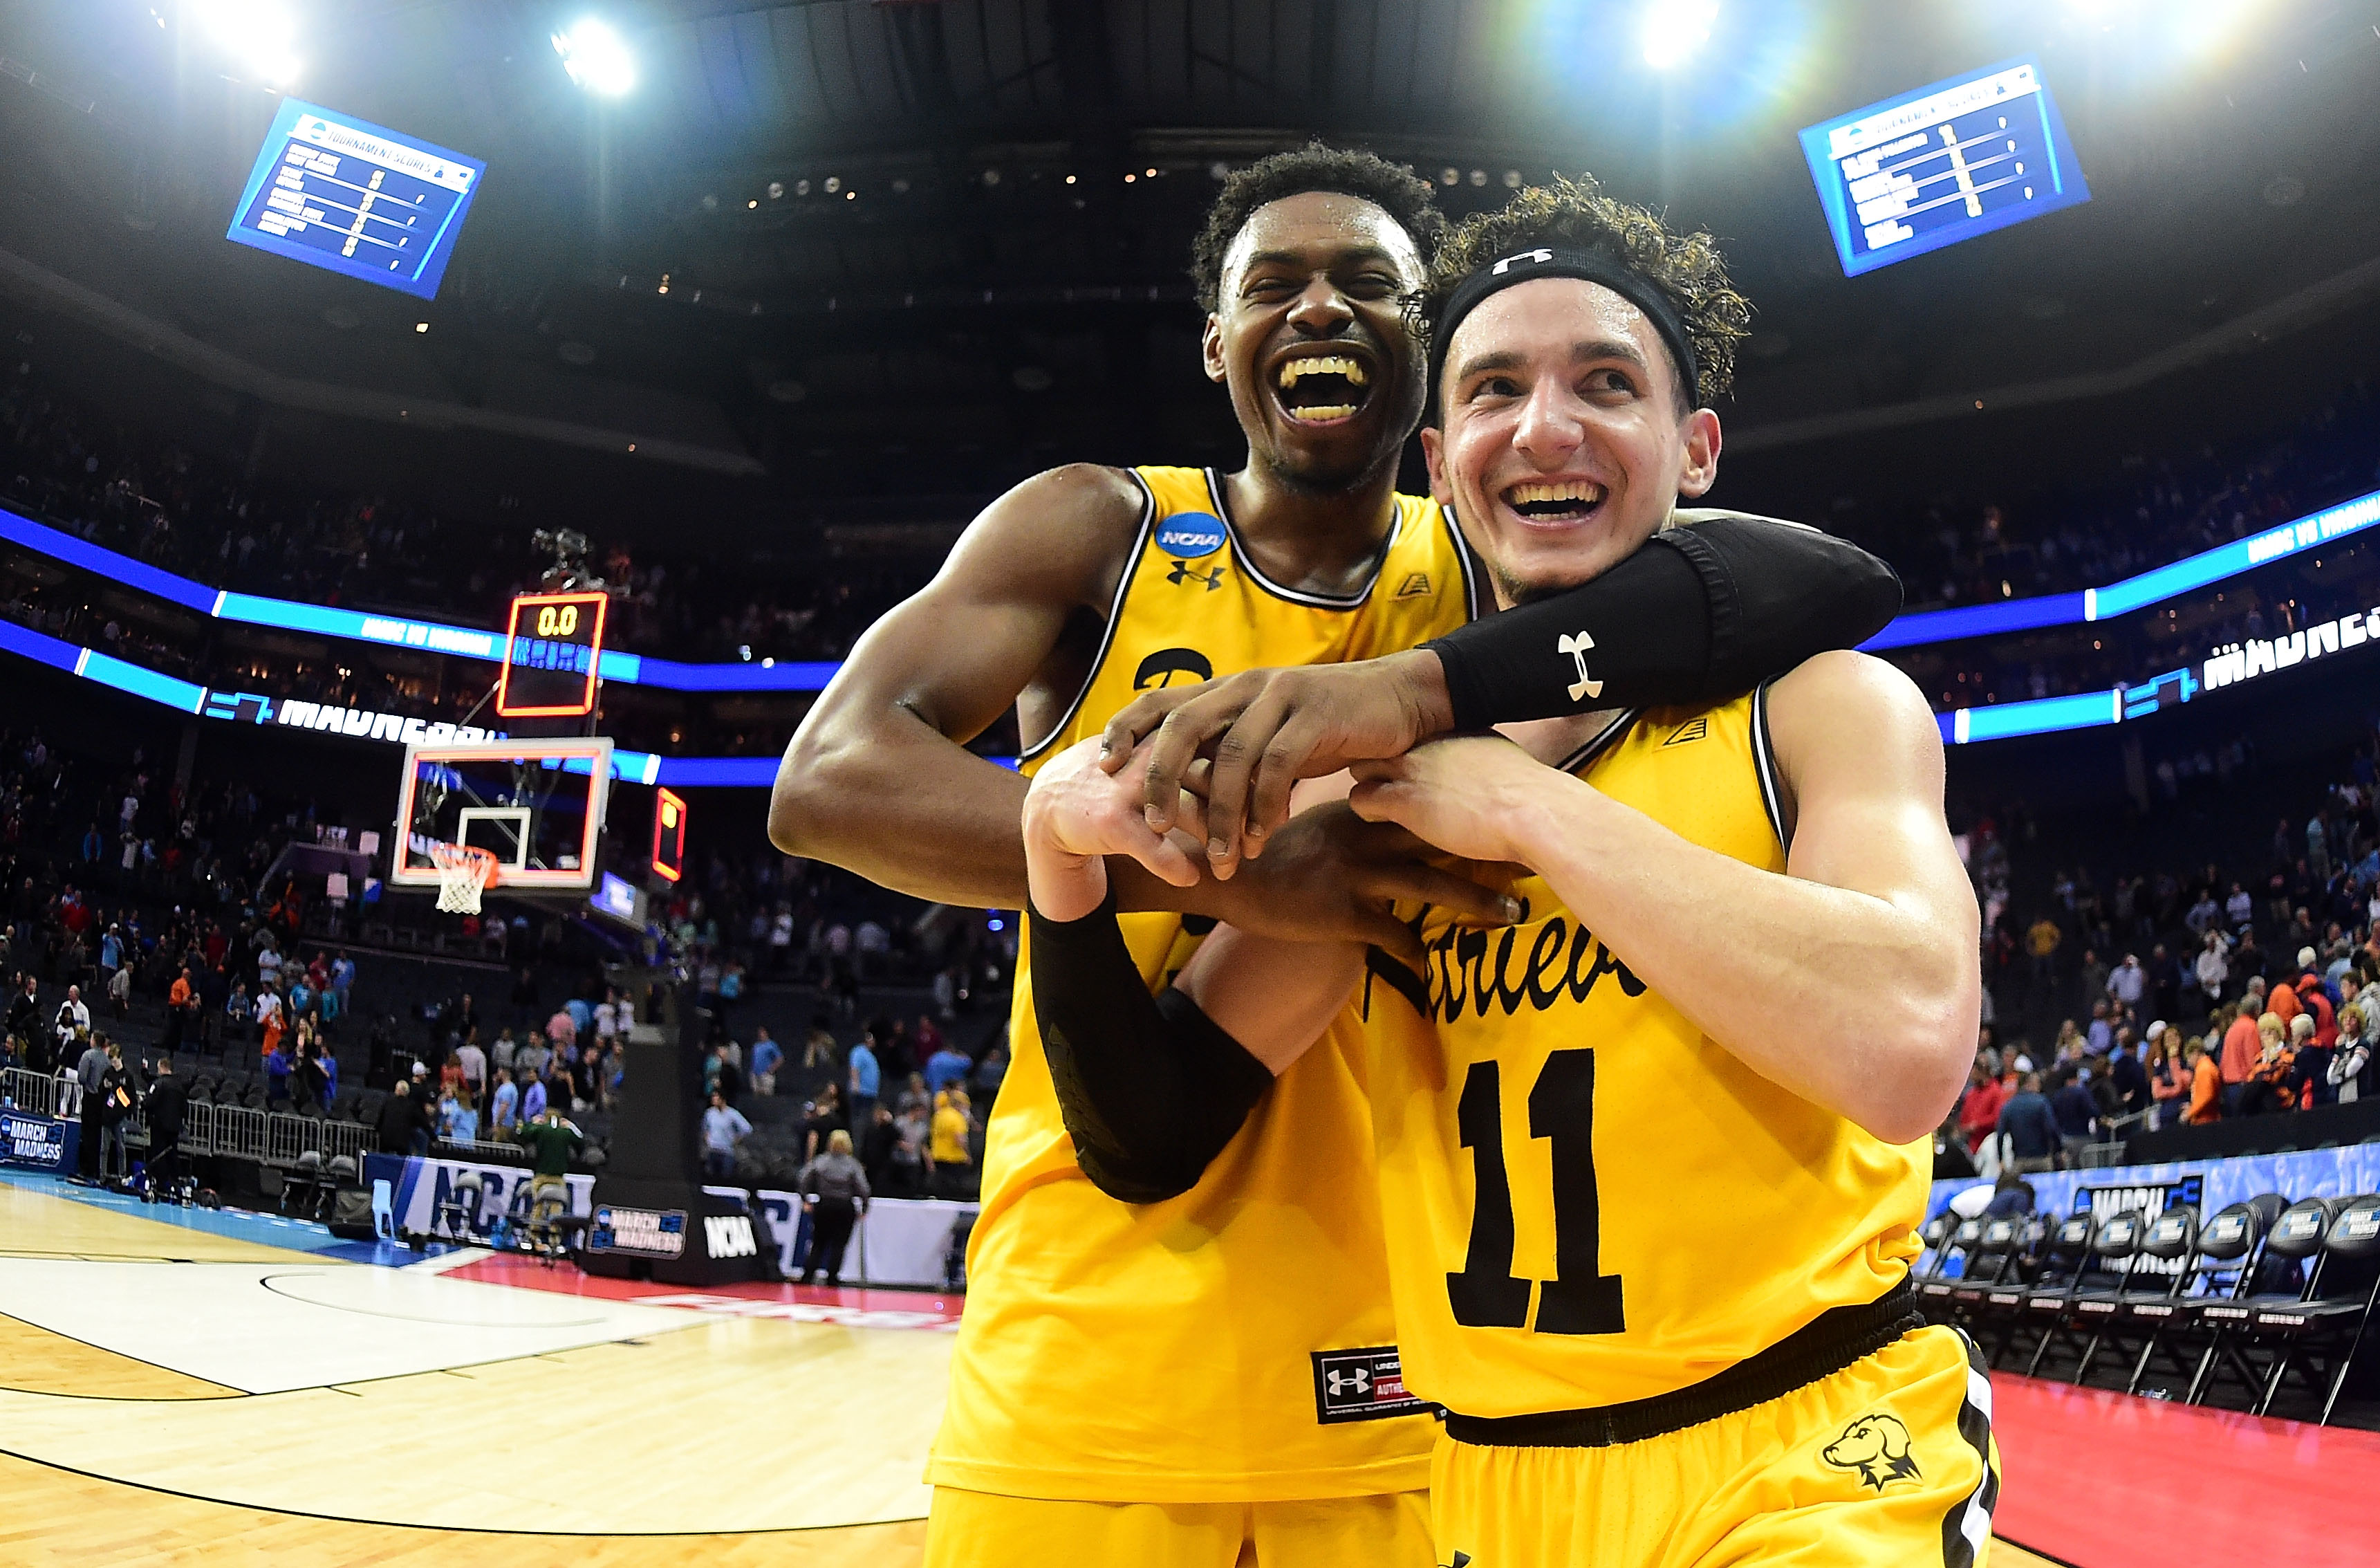 UMBC's surprising run ends with loss to Kansas State